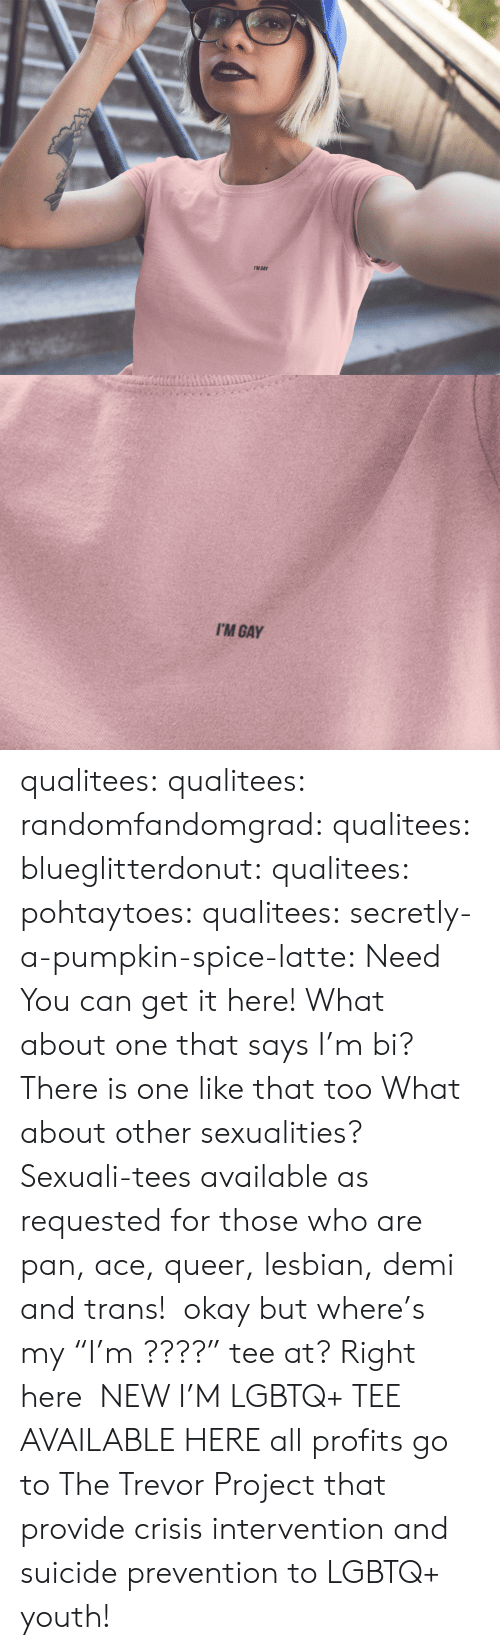 """tee: I'M GAY   I'M GAY qualitees:  qualitees: randomfandomgrad:  qualitees:  blueglitterdonut:  qualitees:   pohtaytoes:  qualitees:   secretly-a-pumpkin-spice-latte: Need You can get it here!   What about one that says I'm bi?  There is one like that too   What about other sexualities?  Sexuali-tees available as requested for those who are pan, ace,queer,lesbian, demi and trans!  okay but where's my""""I'm ????"""" tee at?  Right here  NEW I'M LGBTQ+ TEE AVAILABLE HEREall profits go to The Trevor Project that provide crisis intervention and suicide prevention to LGBTQ+ youth!"""